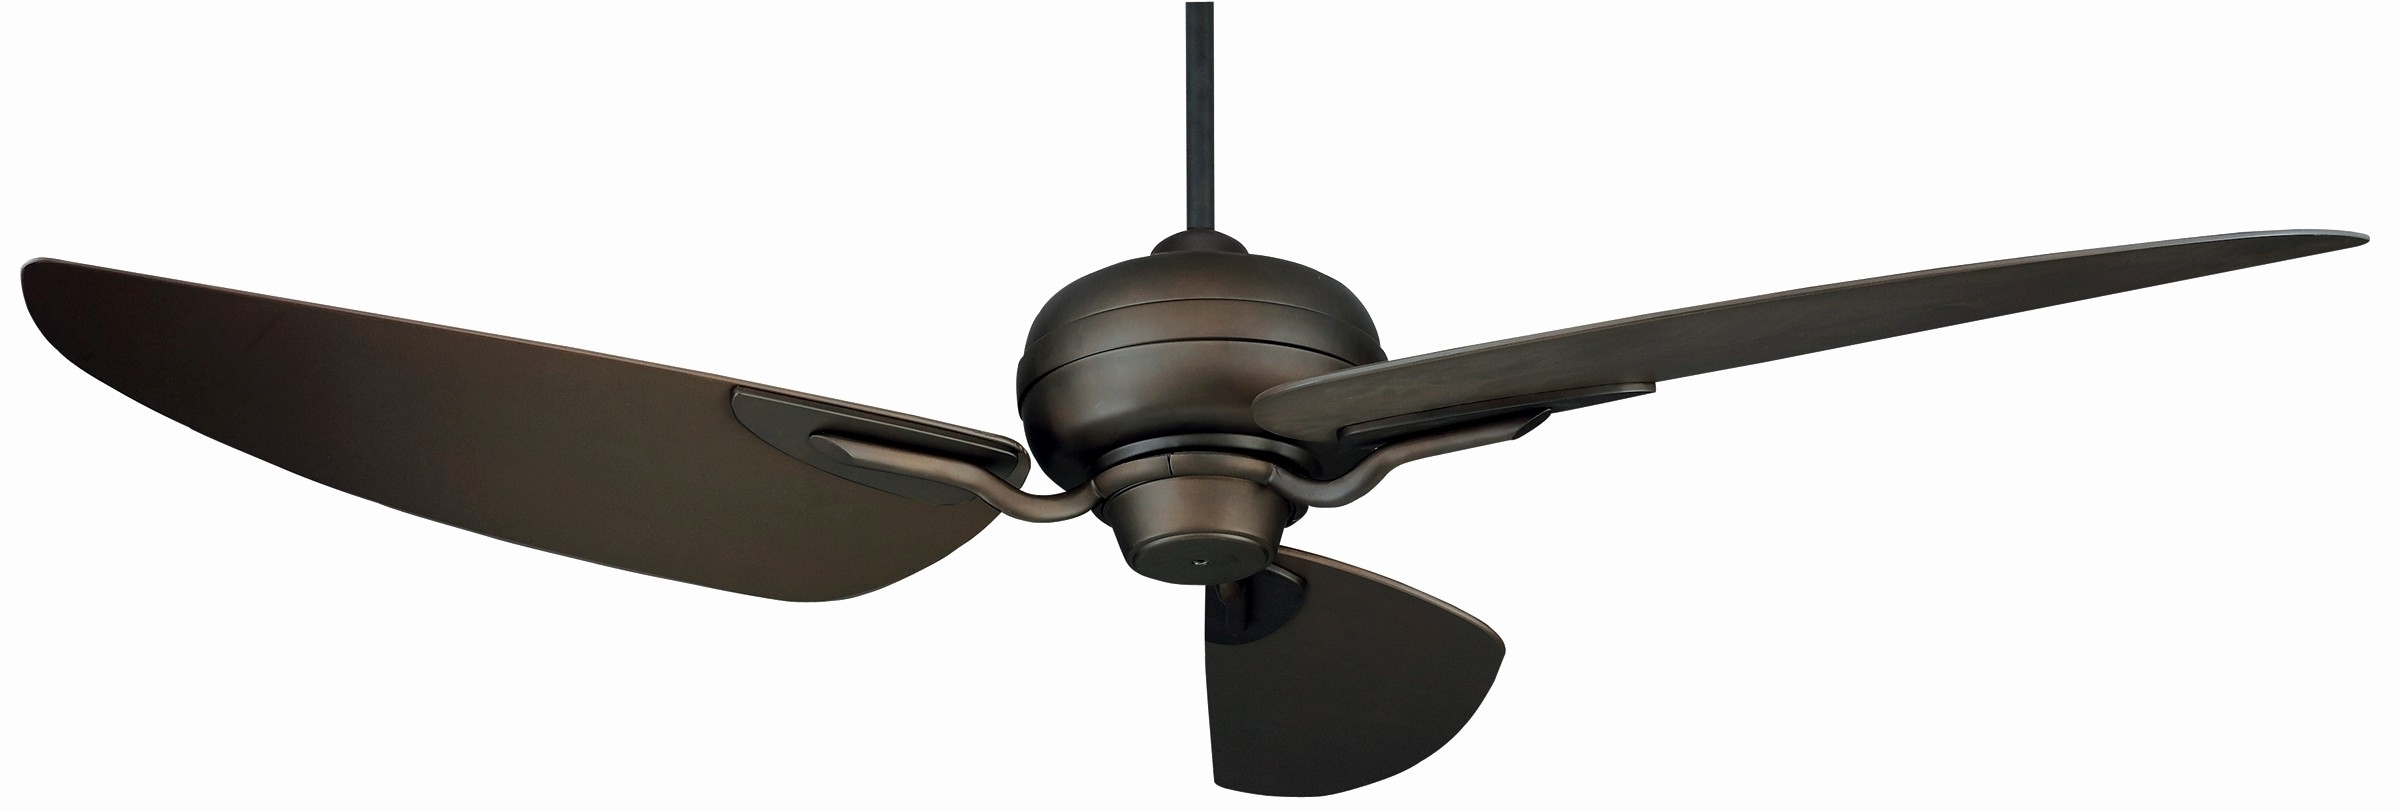 60 Inch Outdoor Ceiling Fans With Lights Intended For Best And Newest Best Inch Outdoor Ceiling Fan Ideas Inch Outdoor Fan 72 Of 60 Remote (View 3 of 20)